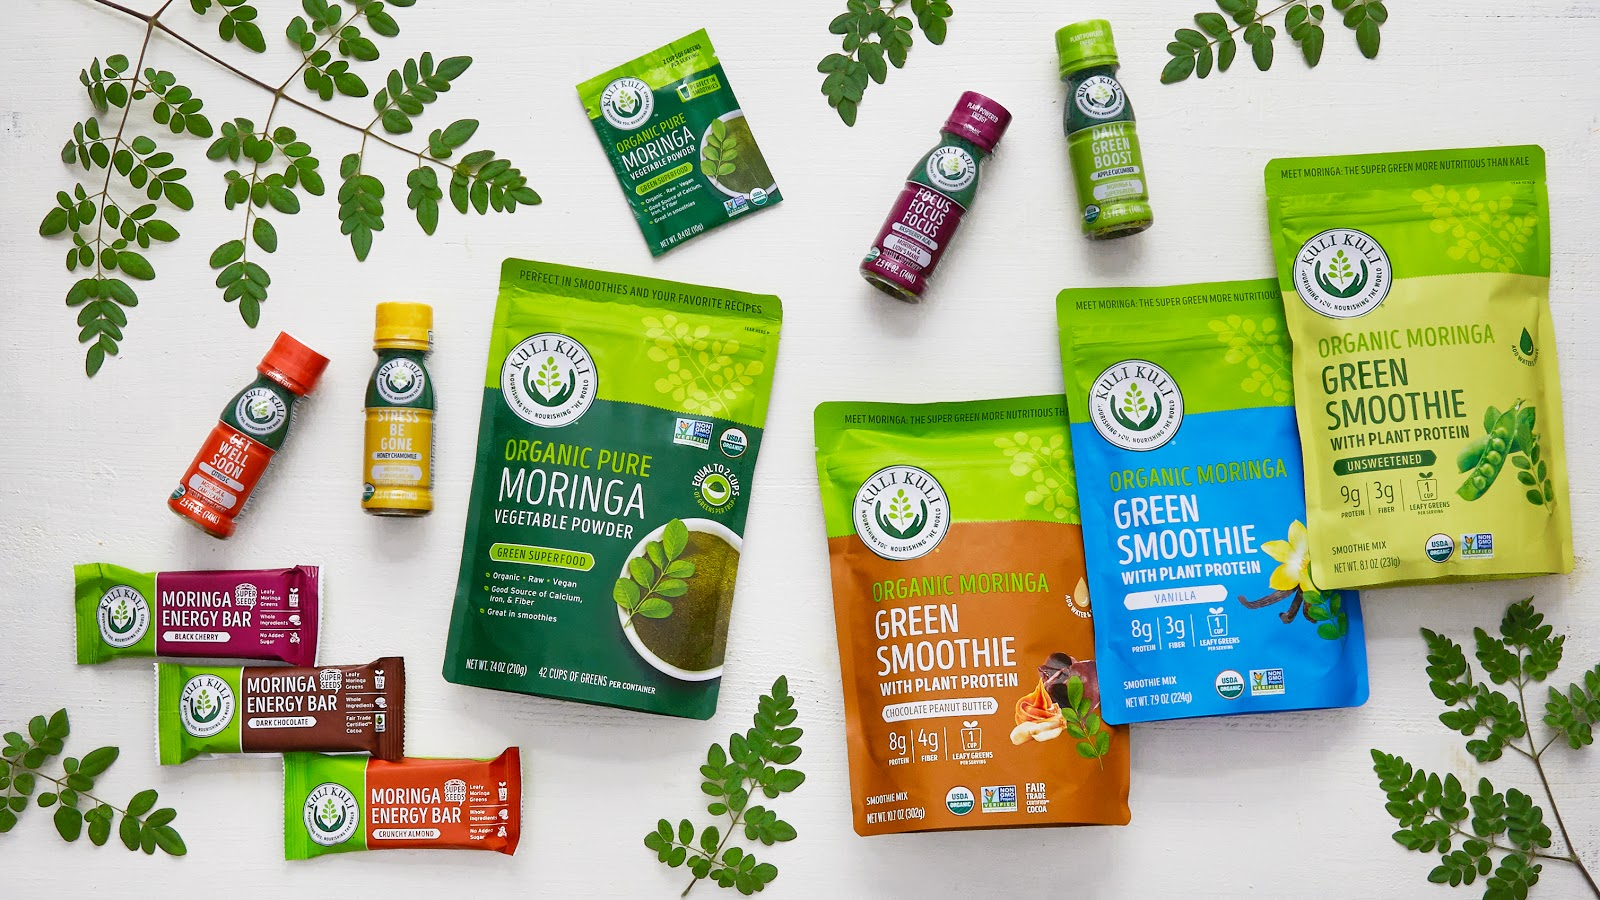 on-starting-a-moringa-superfood-company-with-11k-stores